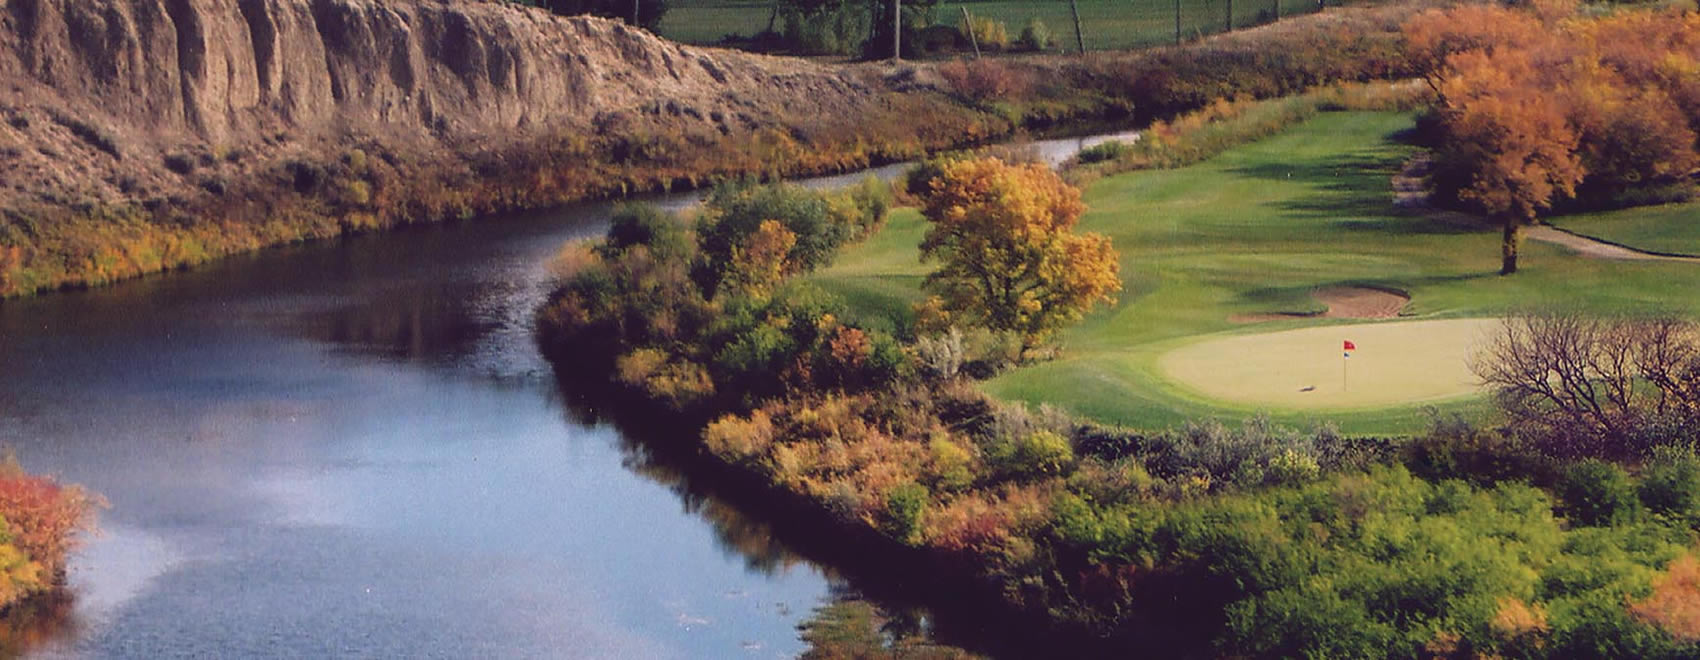 Chinook Golf Course